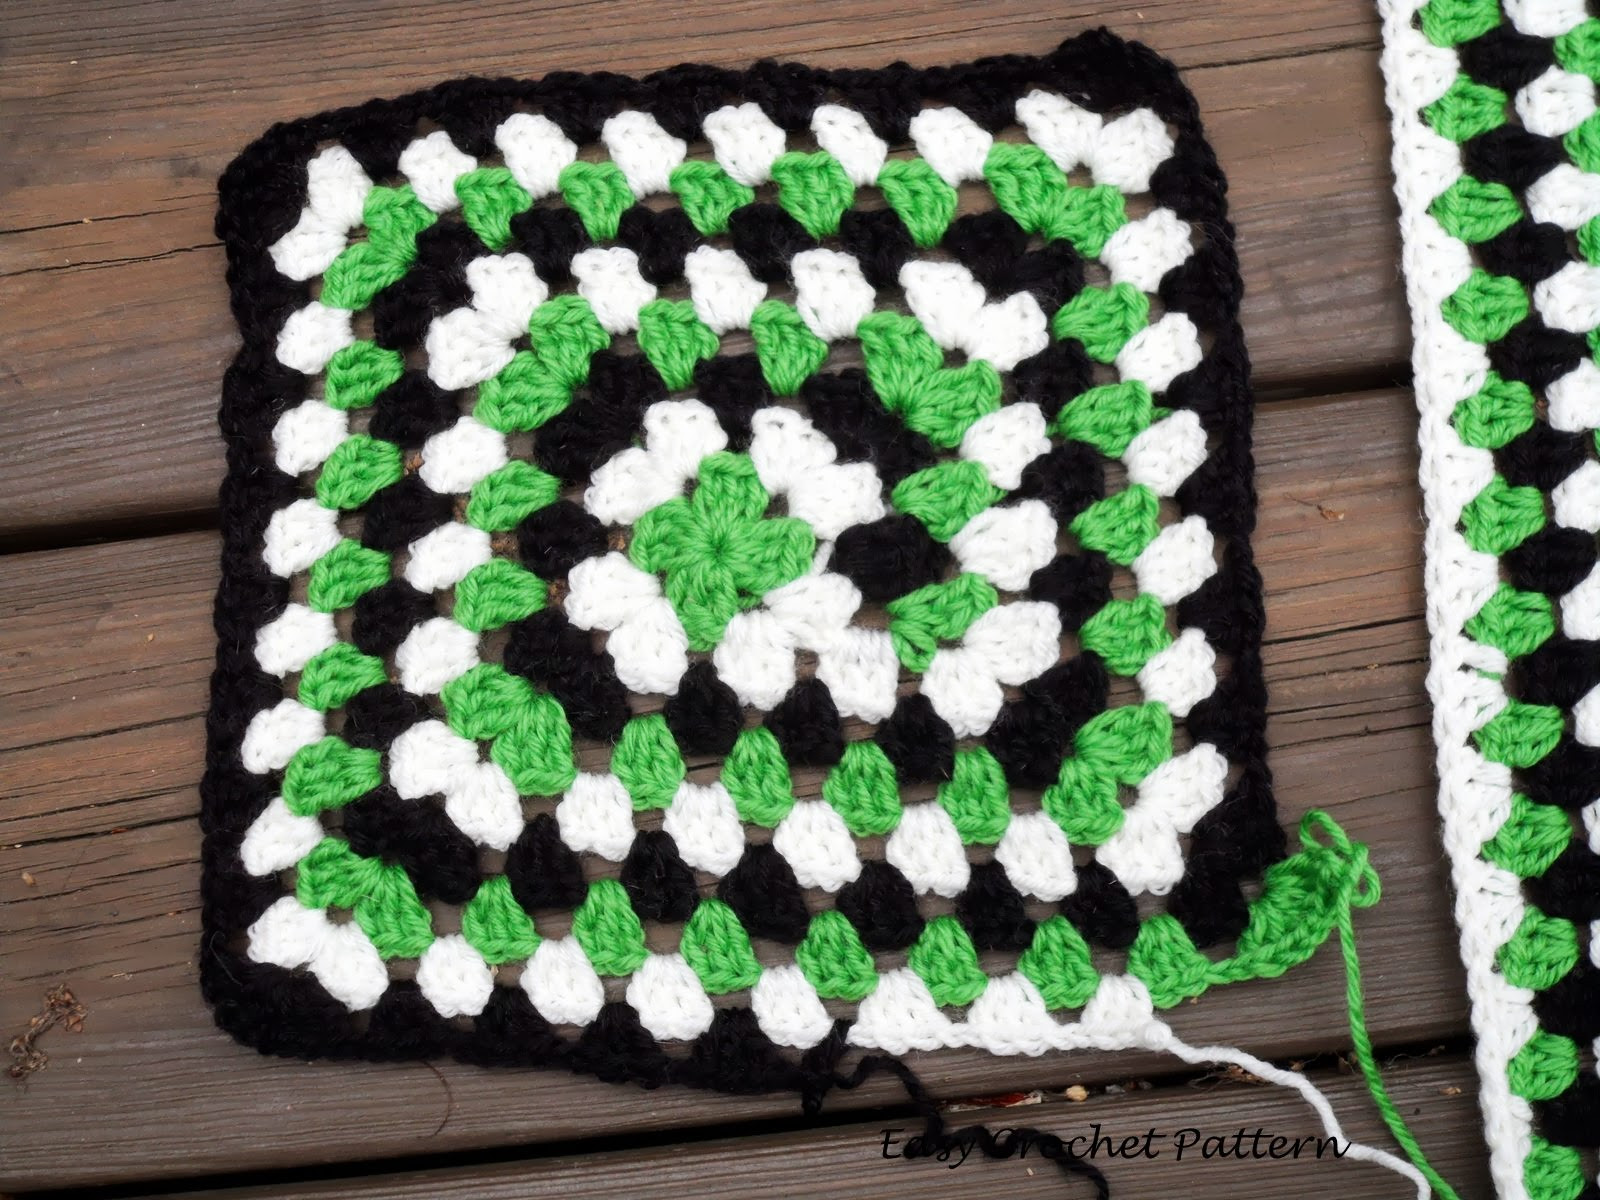 New Easy Crochet Pattern Never Ending Granny Square Afghan Easy Granny Square Pattern Of Amazing 41 Pictures Easy Granny Square Pattern